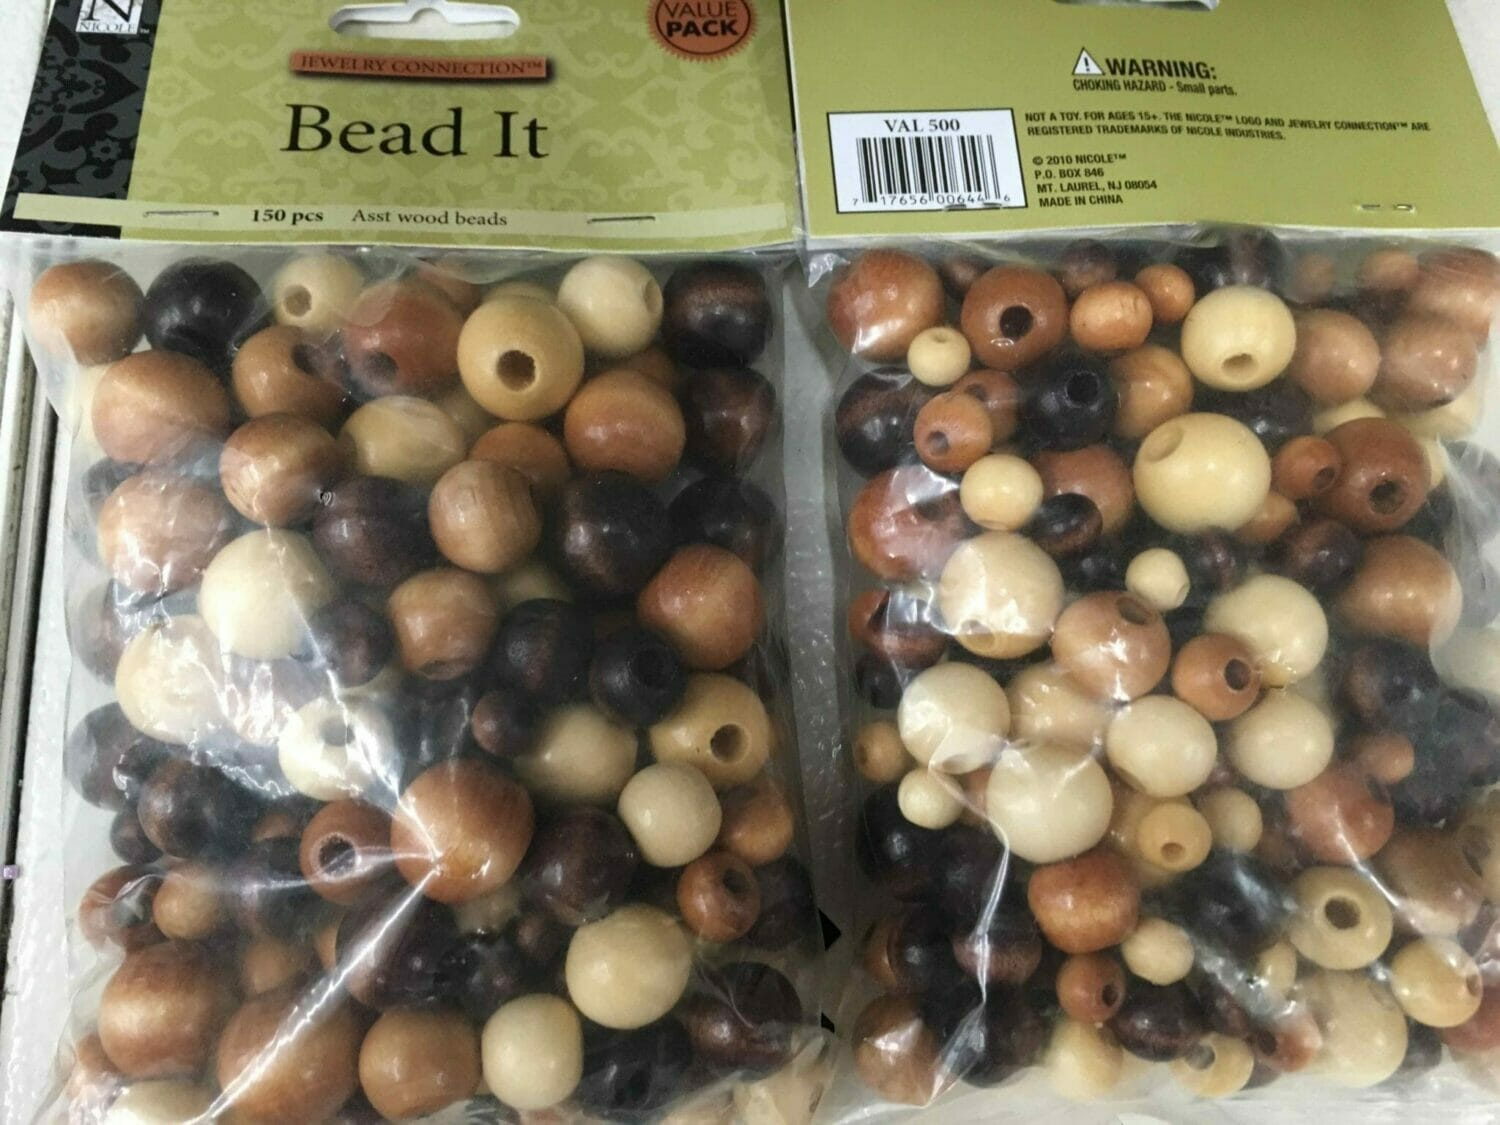 Bags of assorted wooden beads cover a